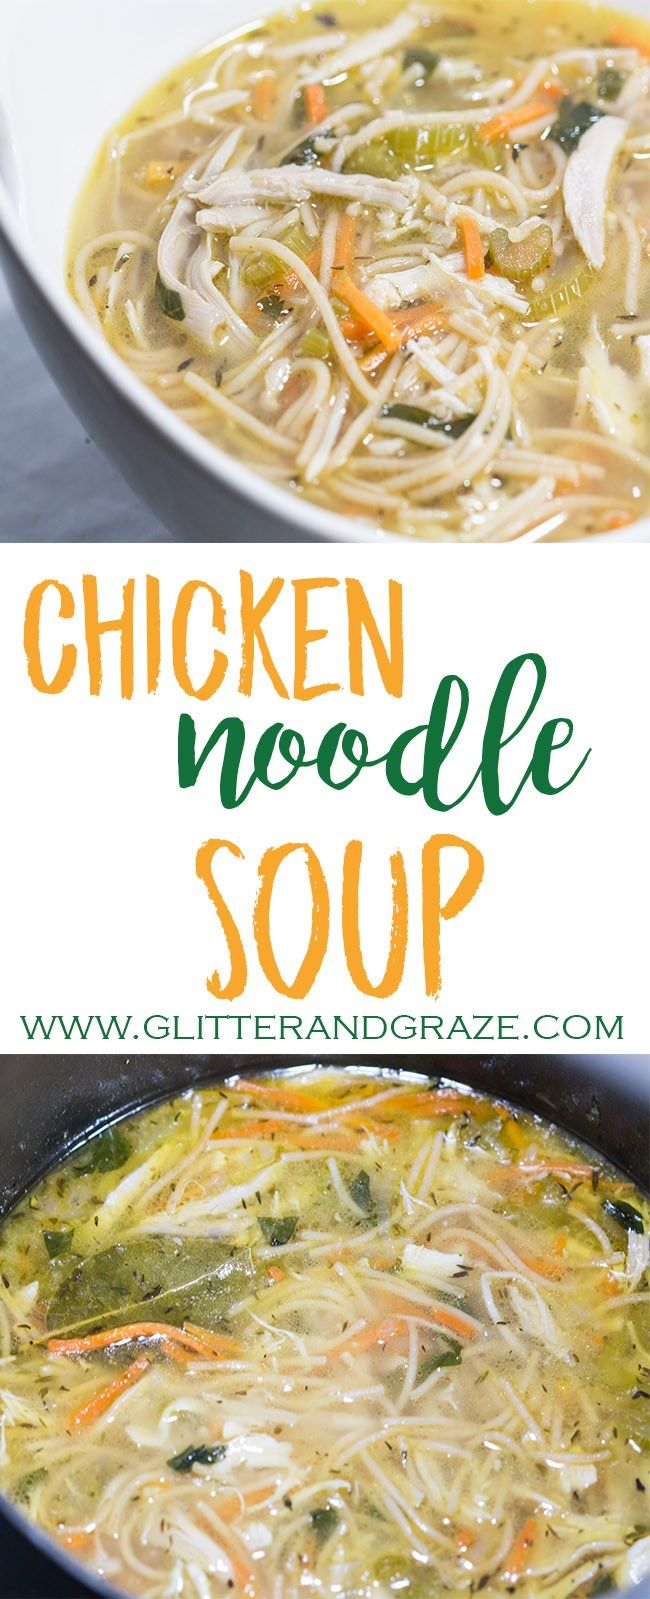 There is nothing like a big bowl of warm chicken noodle soup on a cold day. This one is packed with flavor and is nice and hearty. #chicken #chickensoup #soup #chickennoodle